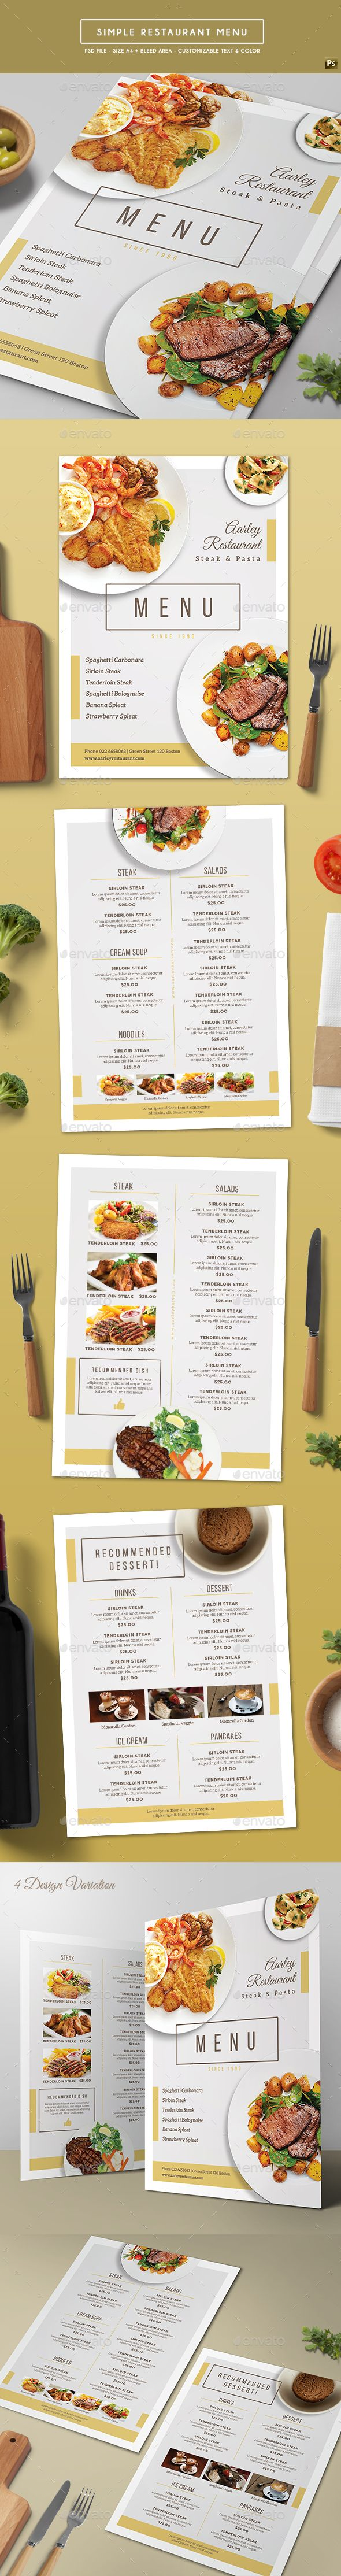 117 best Restaurant Menu Template Design images on Pinterest